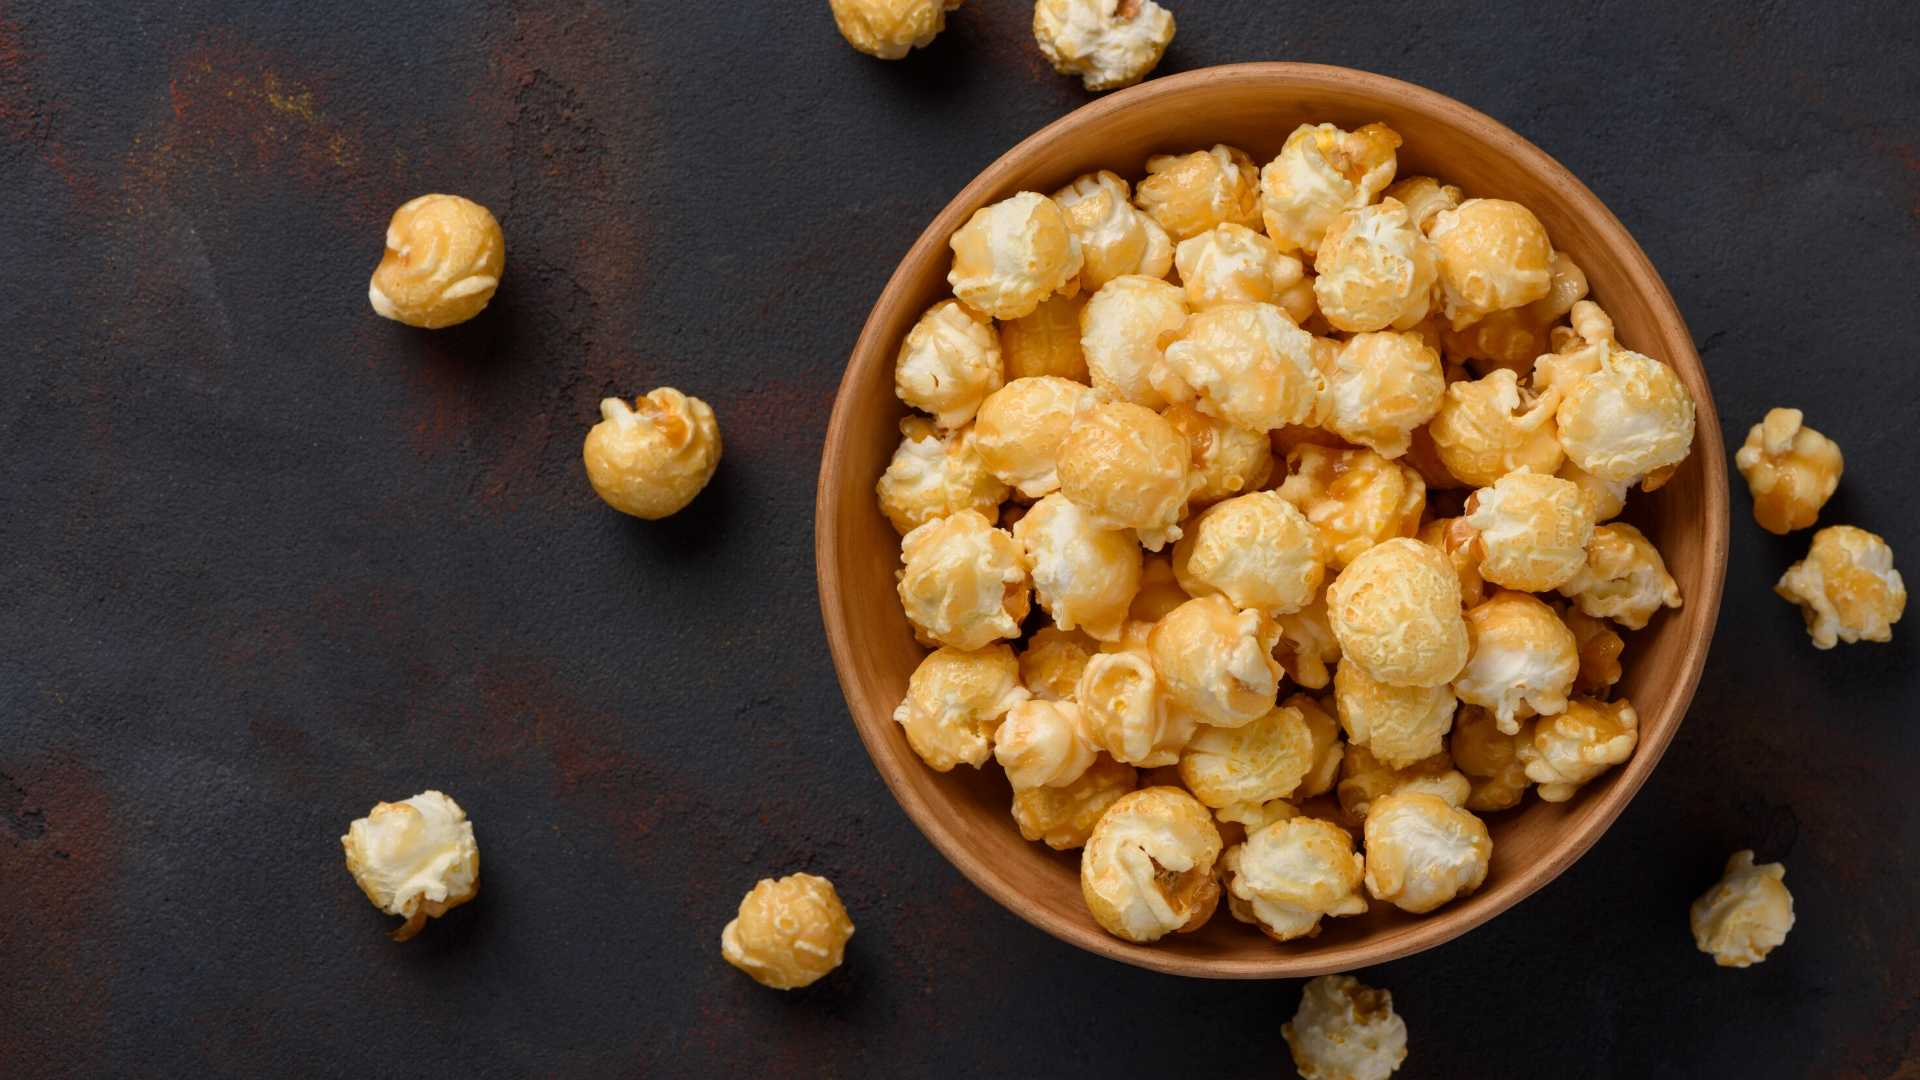 is kettle corn bad for you